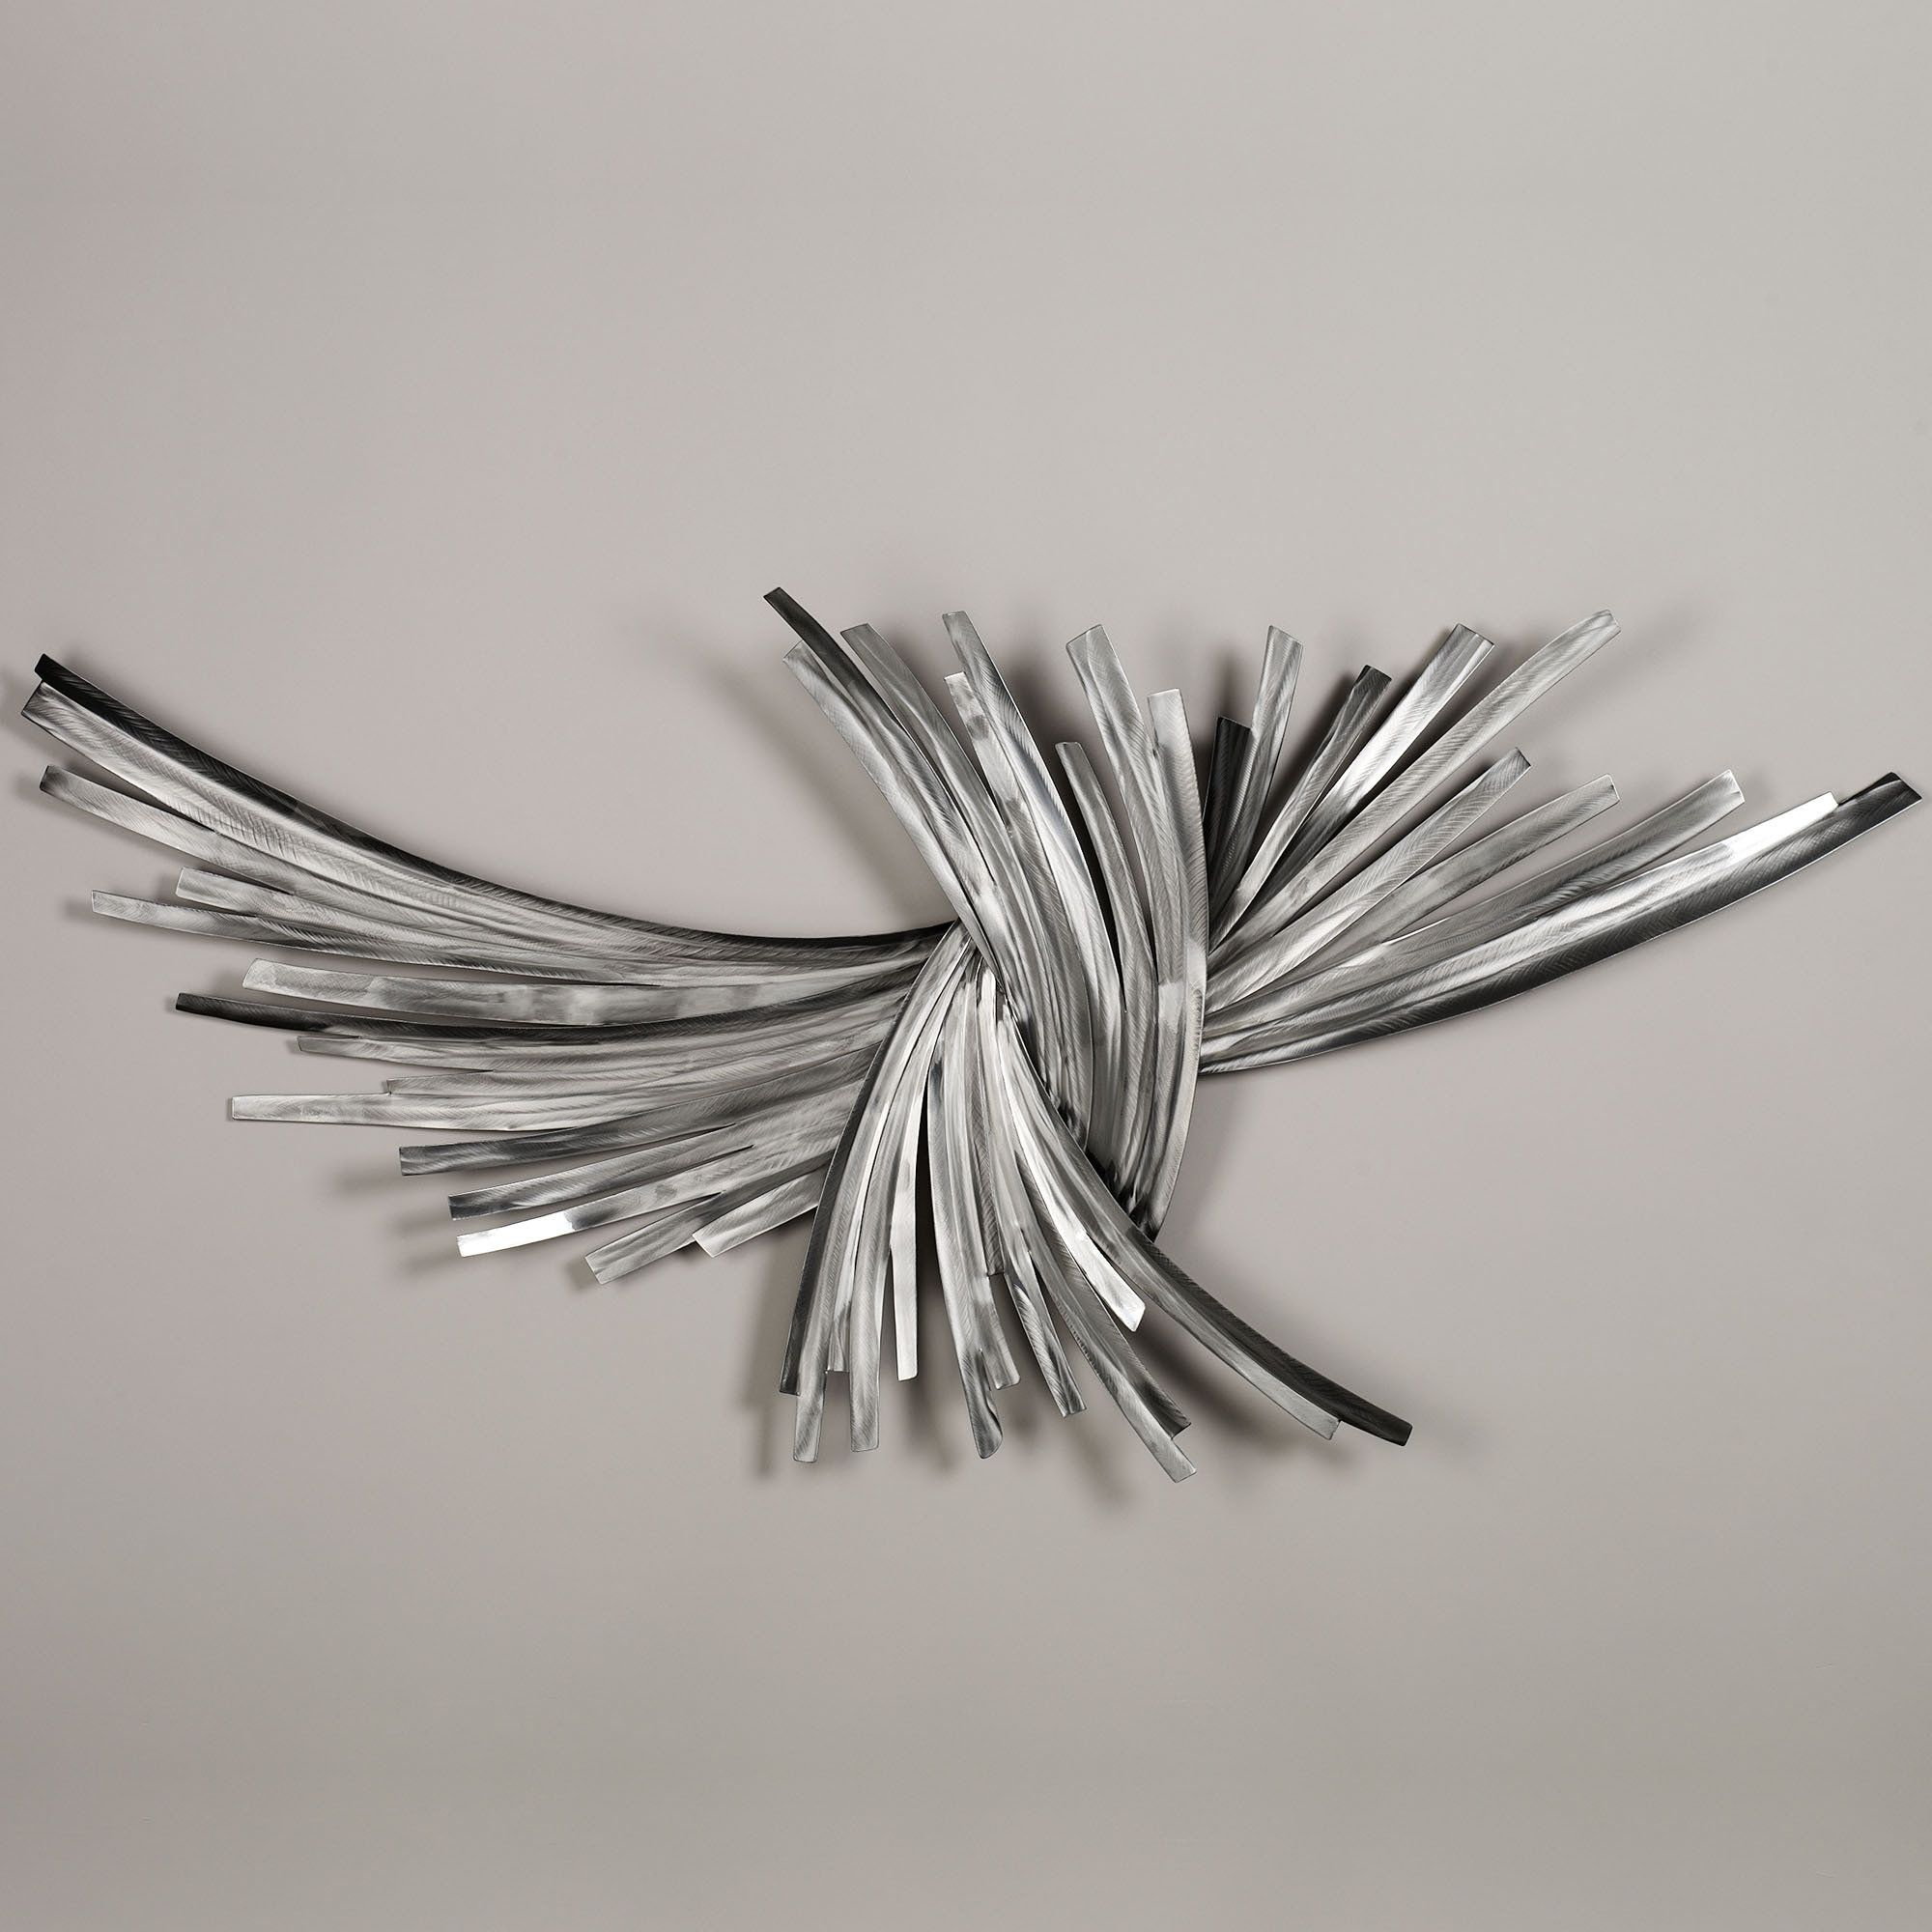 Infinity Silver Metal Wall Sculpture Metal Sculpture Wall Art